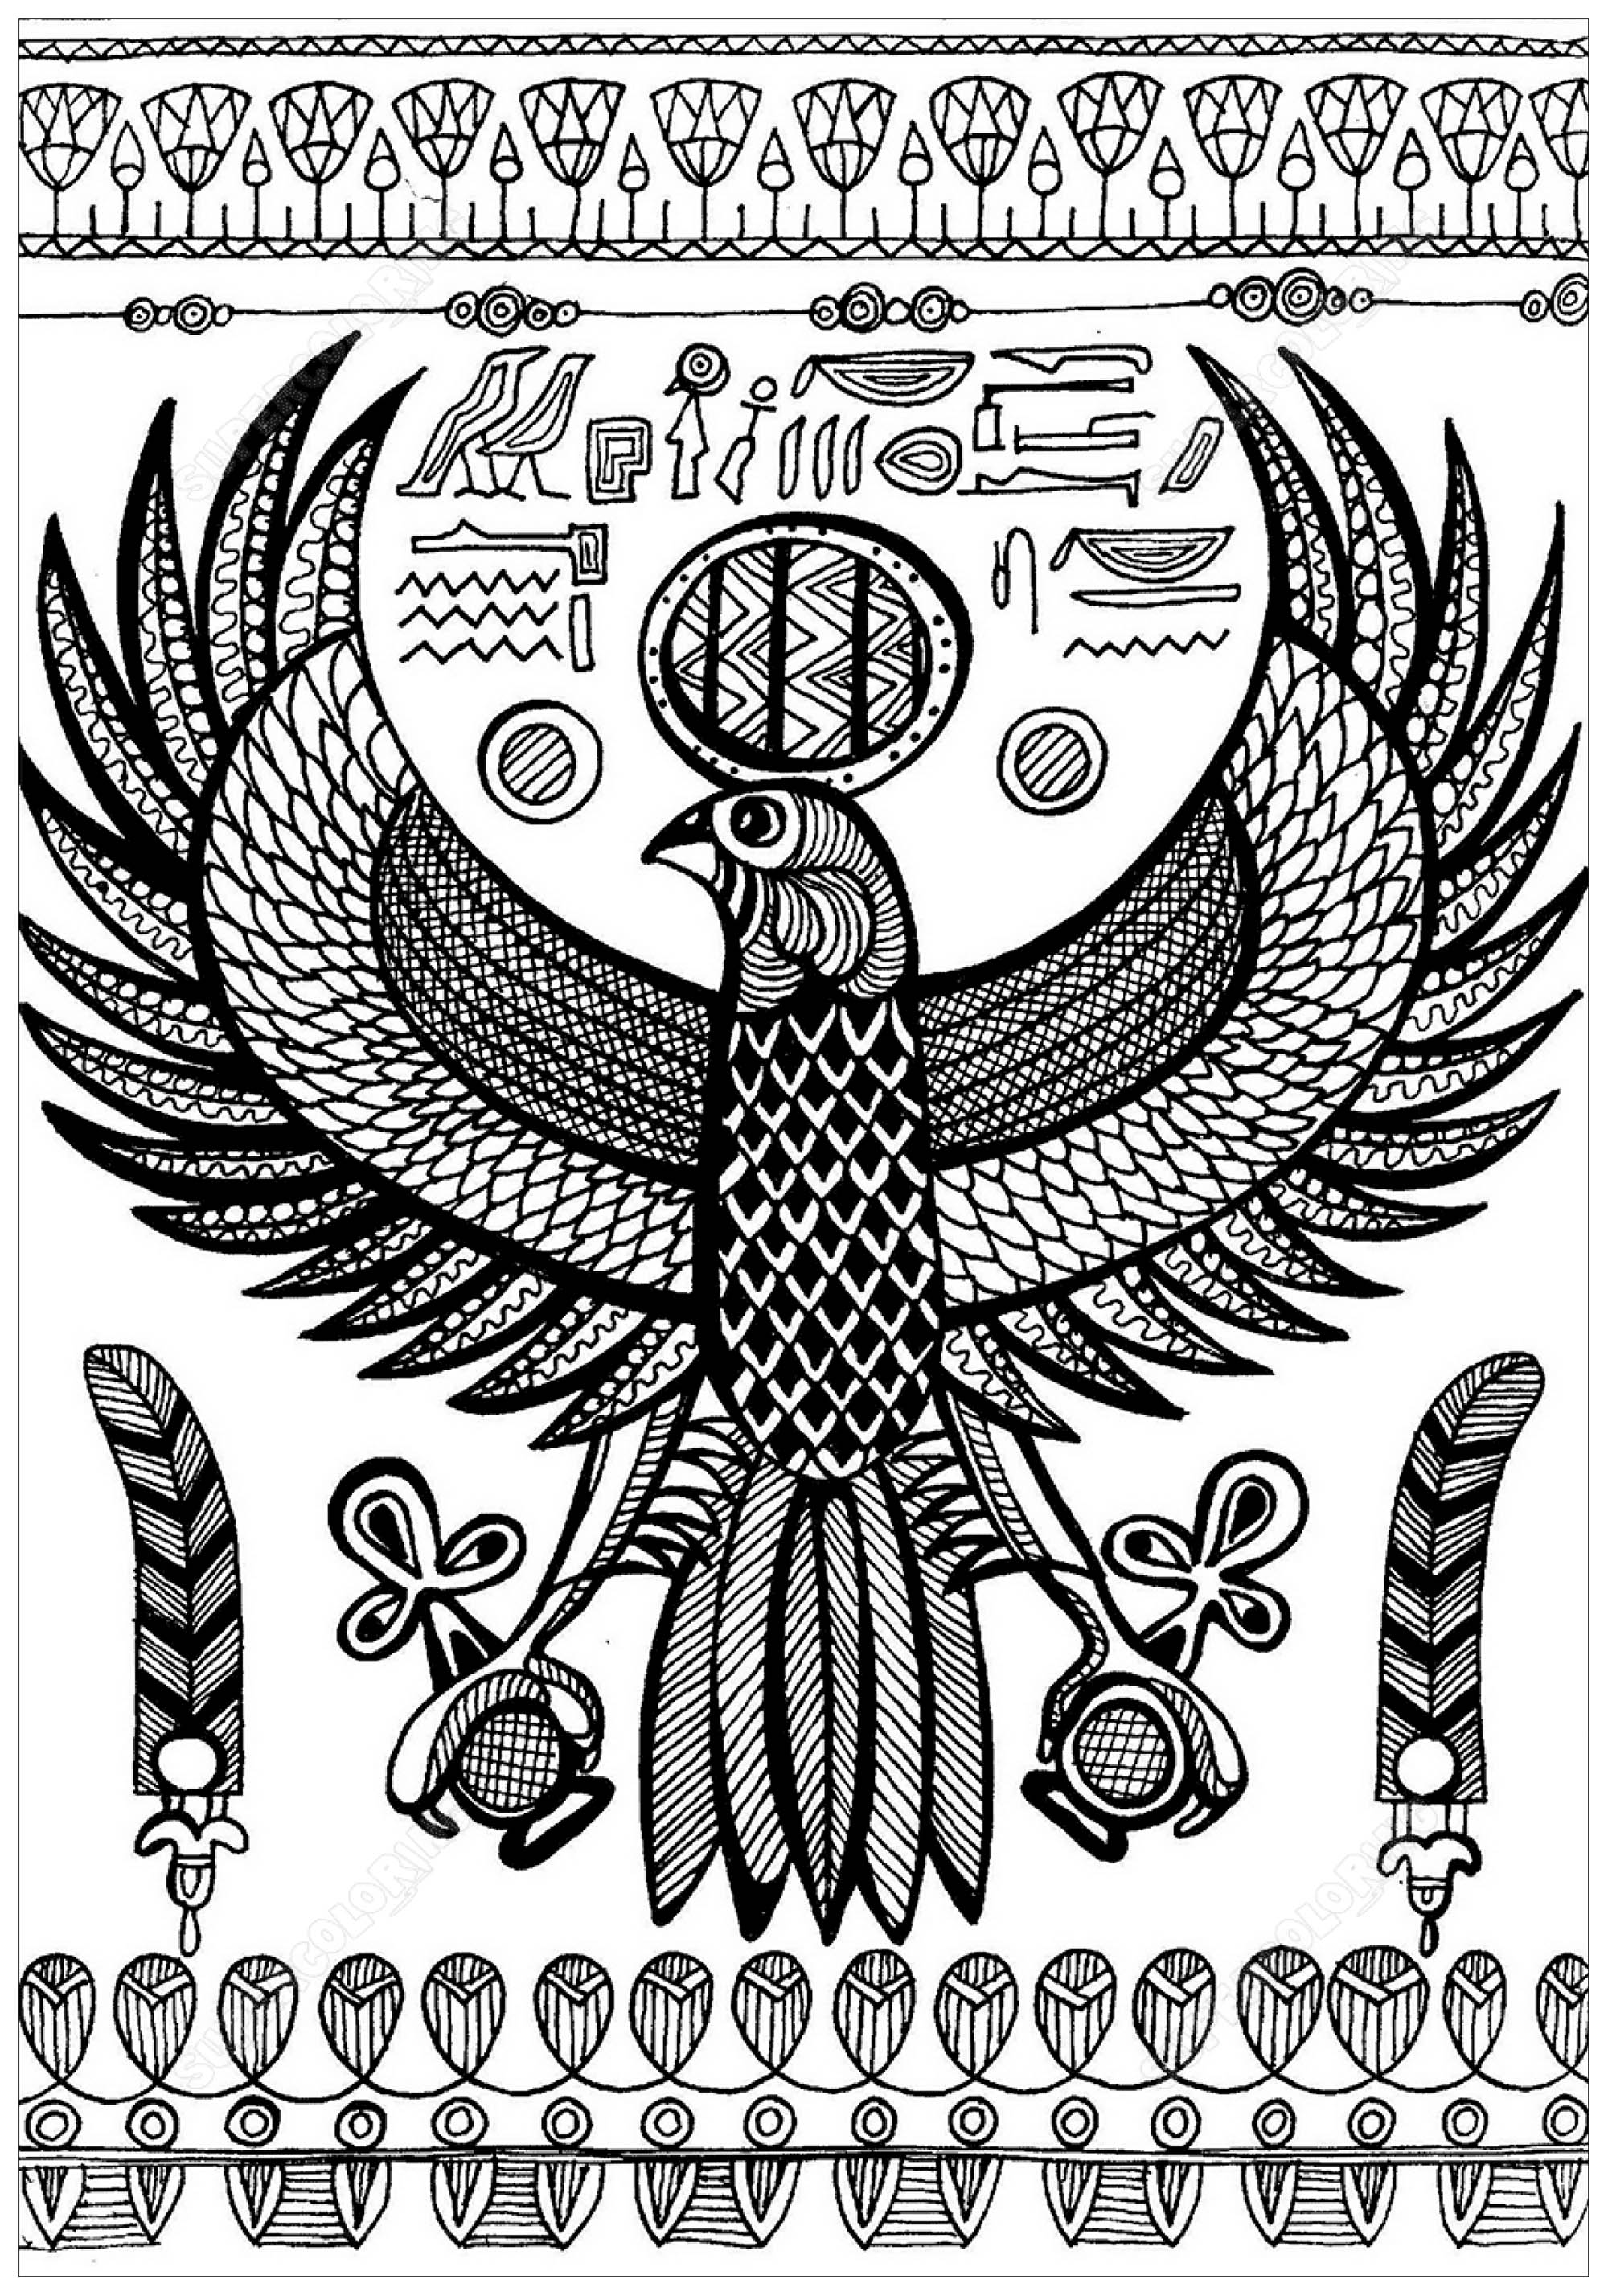 Horus, Ancient egyptian god depicted as falcon